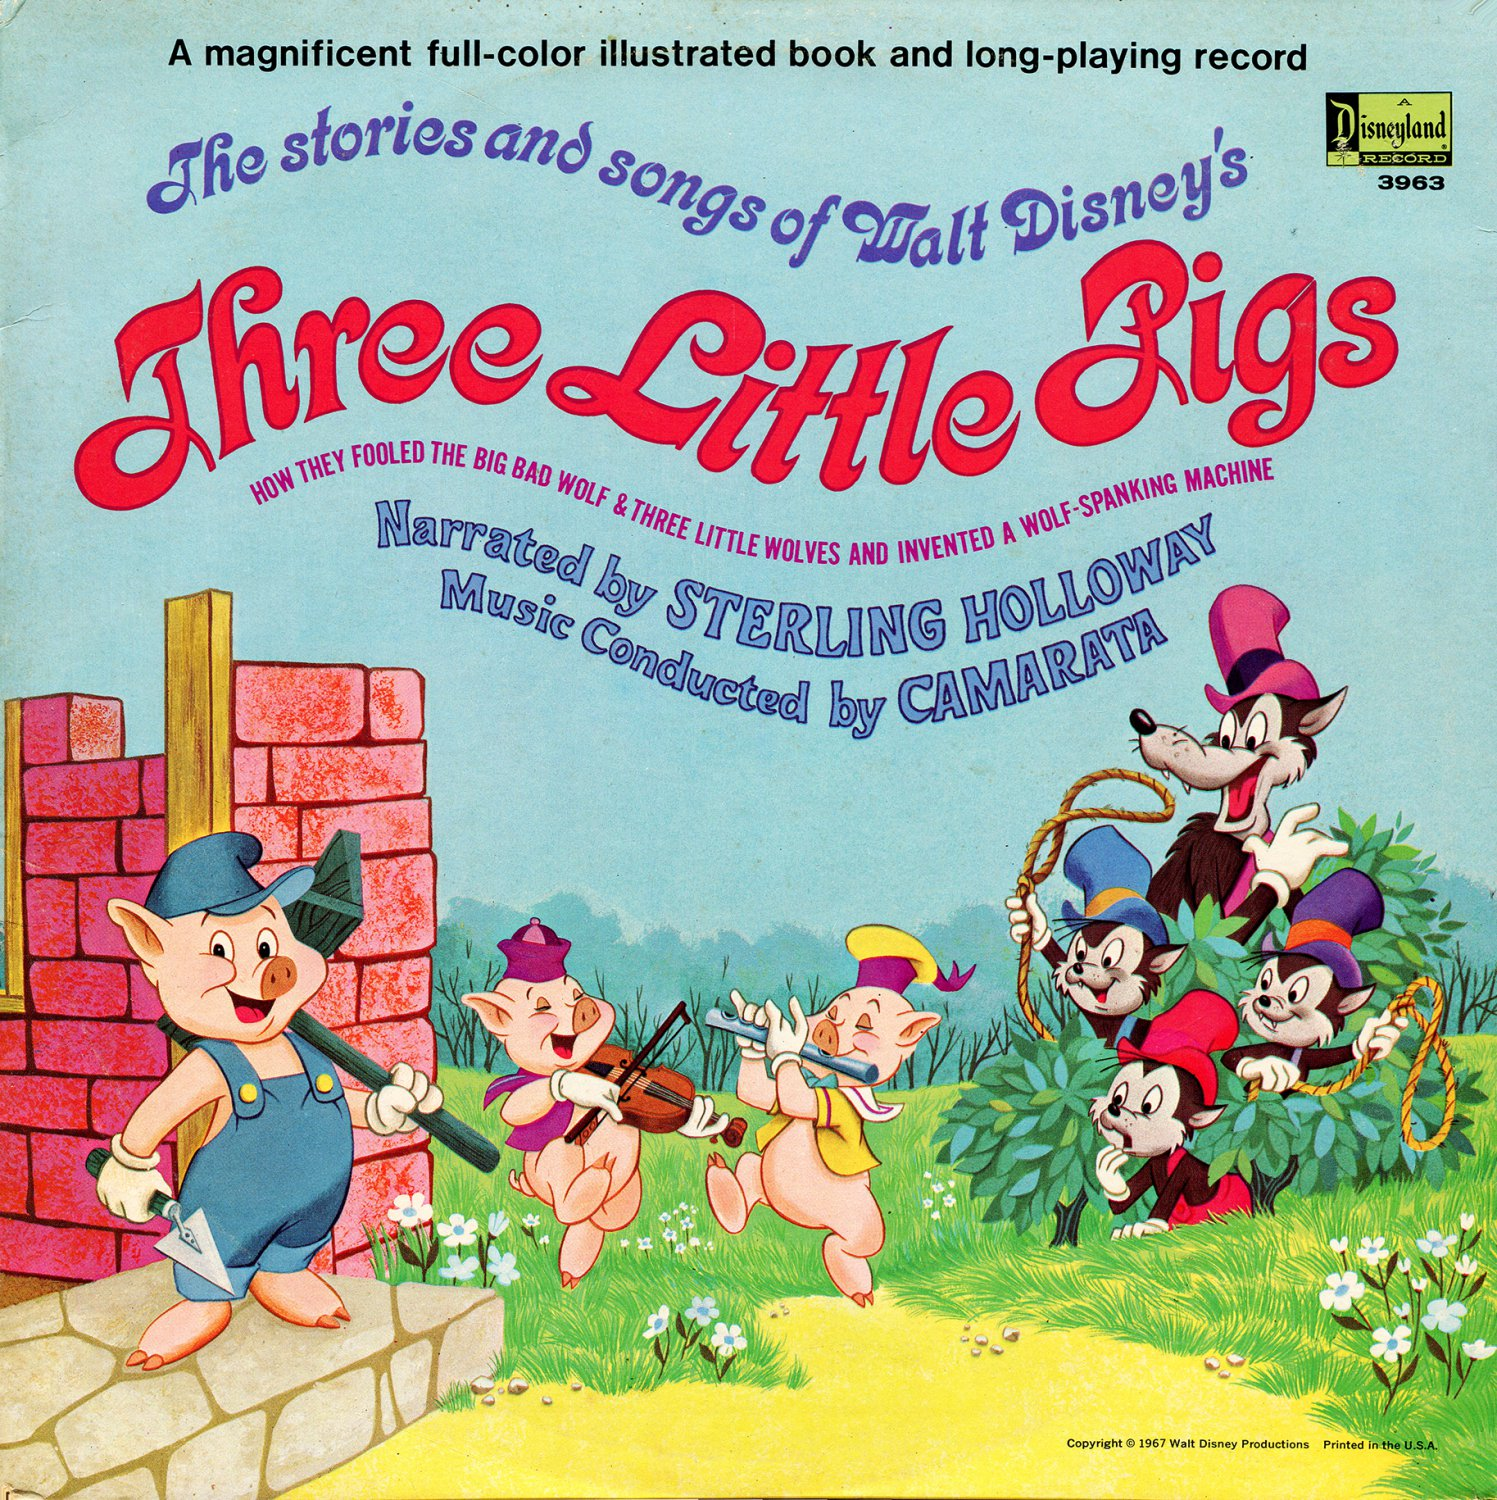 Walt Disney's Three Little Pigs - Story & Songs Soundtrack LP/CD